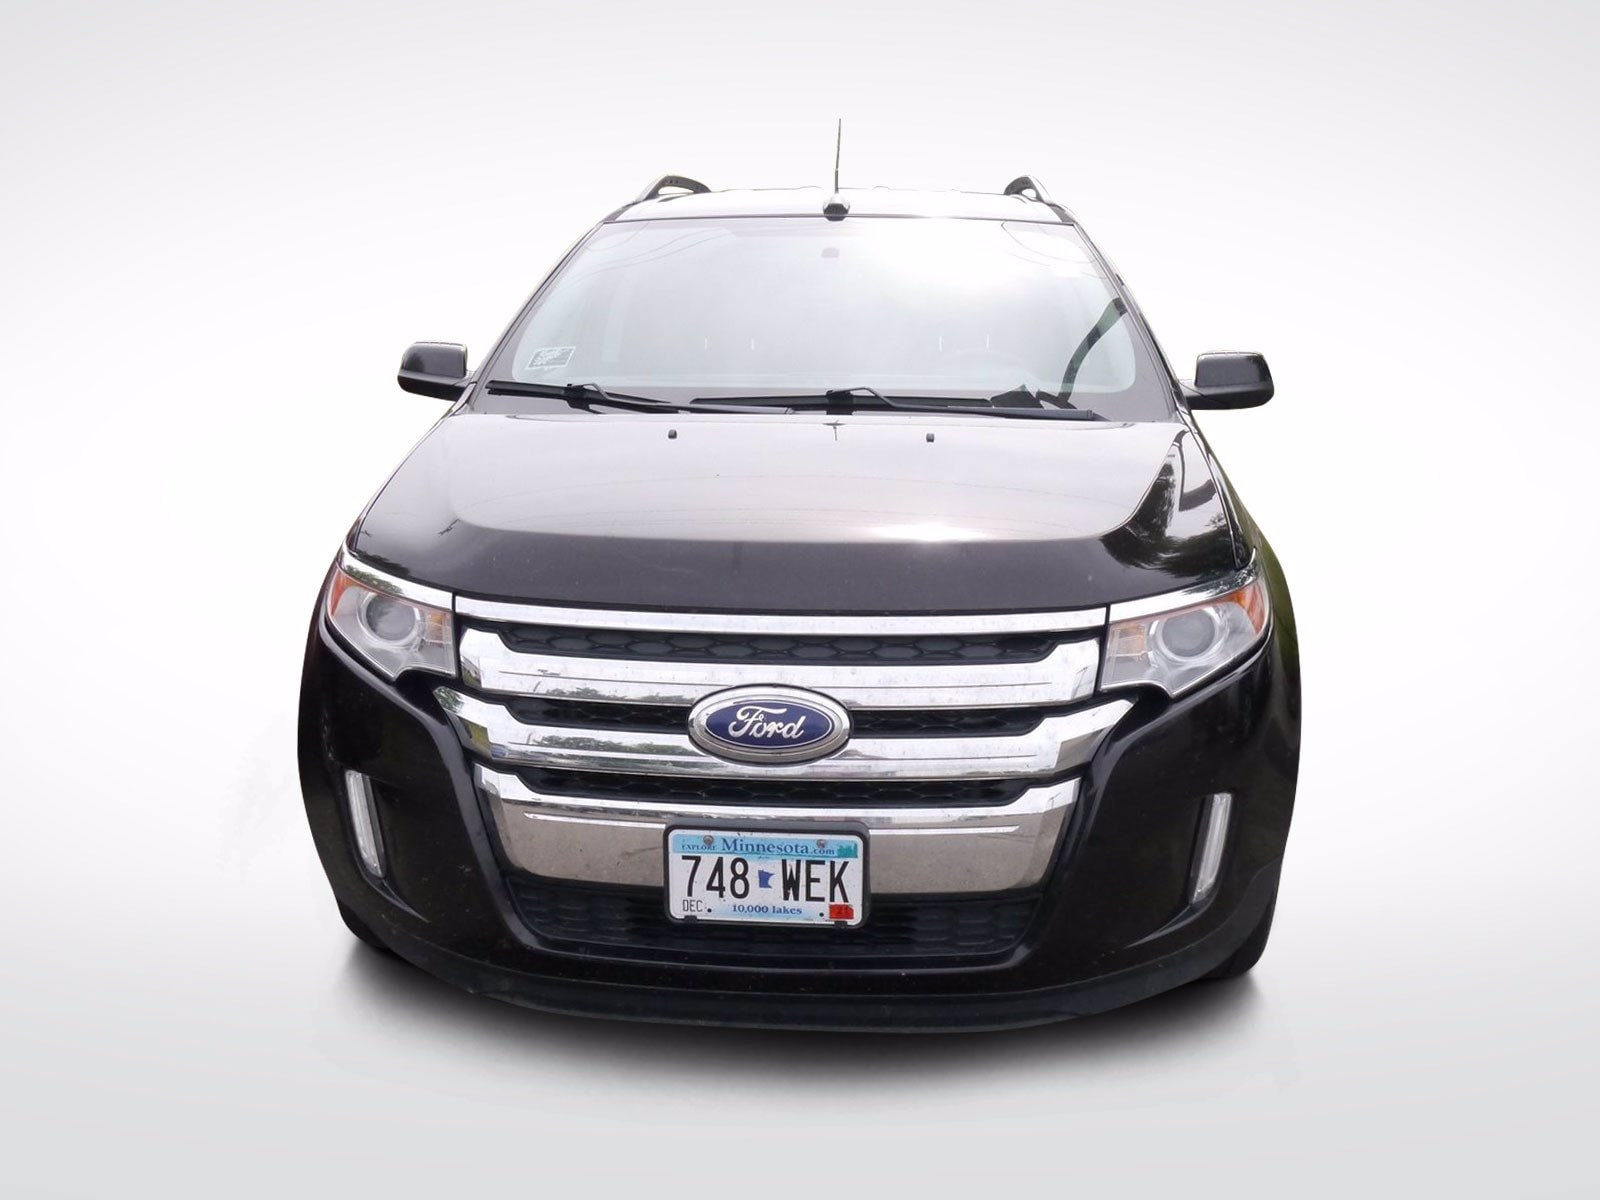 Used 2013 Ford Edge Limited with VIN 2FMDK4KC2DBC38247 for sale in Baxter, Minnesota